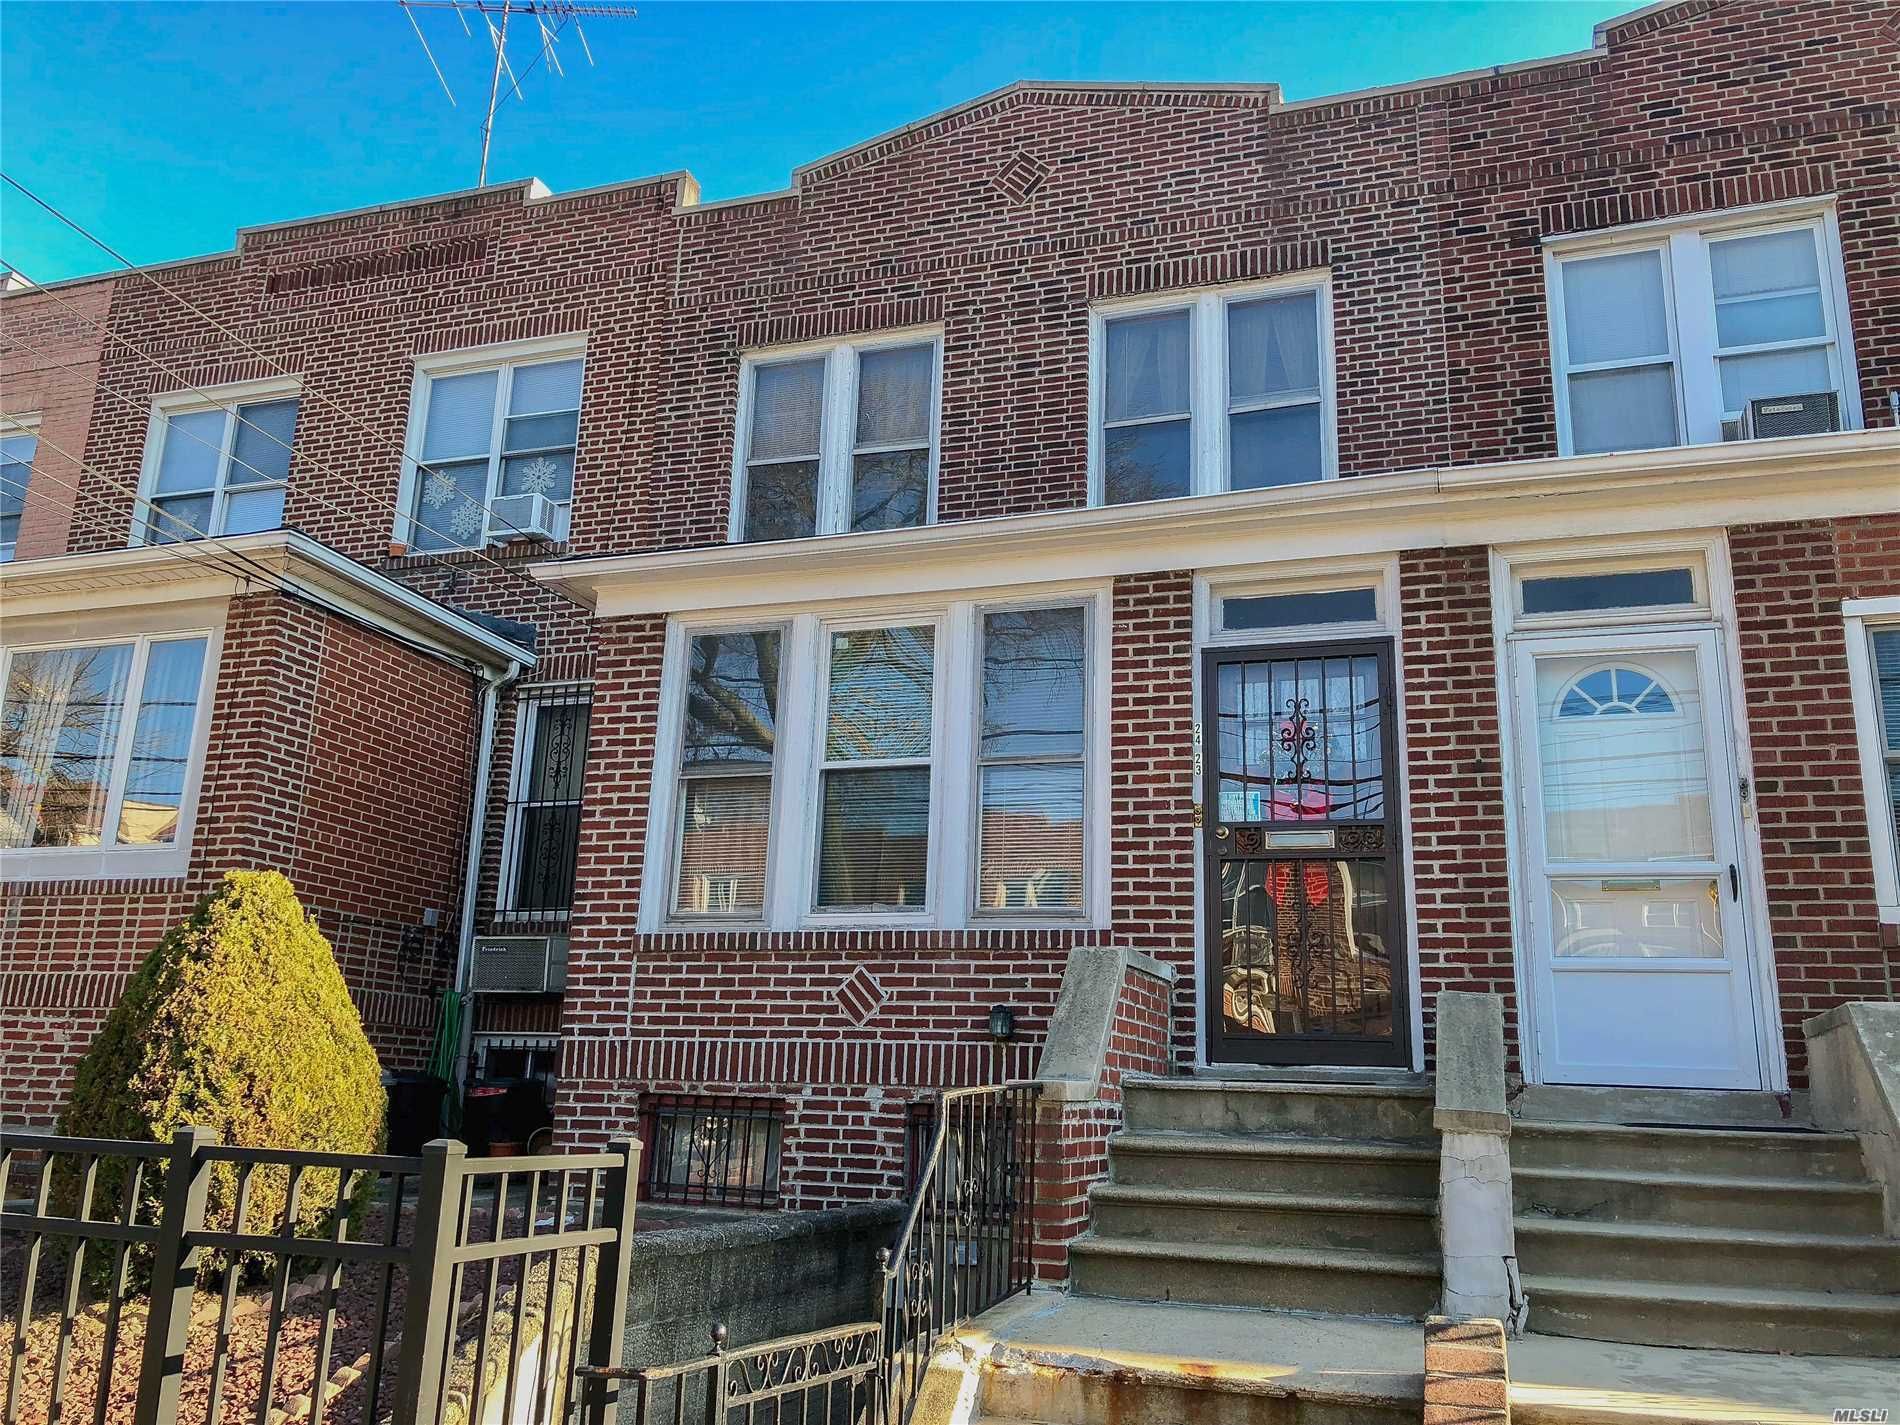 Legal 2 Family Brick House In The Ditmars Section Of Astoria. Prime Location, Just 2 Short Blocks From The Train, 2 Blocks From Ditmars Blvd, And 3 Blocks From Hoyt Playground. Sitting On An Extra Long 20 X 129 Lot And Offering 1, 364 Sq Ft Of Living Space, This House Features 4 Bedrms, 2 Baths, Full Finished Basement With Front And Rear Entrance, High Ceilings, Wood Floors, Eat-In-Kitchens, Enclosed Balcony, Private Fully Paved Backyard, Detached 2 Car Garage, And Much More. House Needs Some Tlc